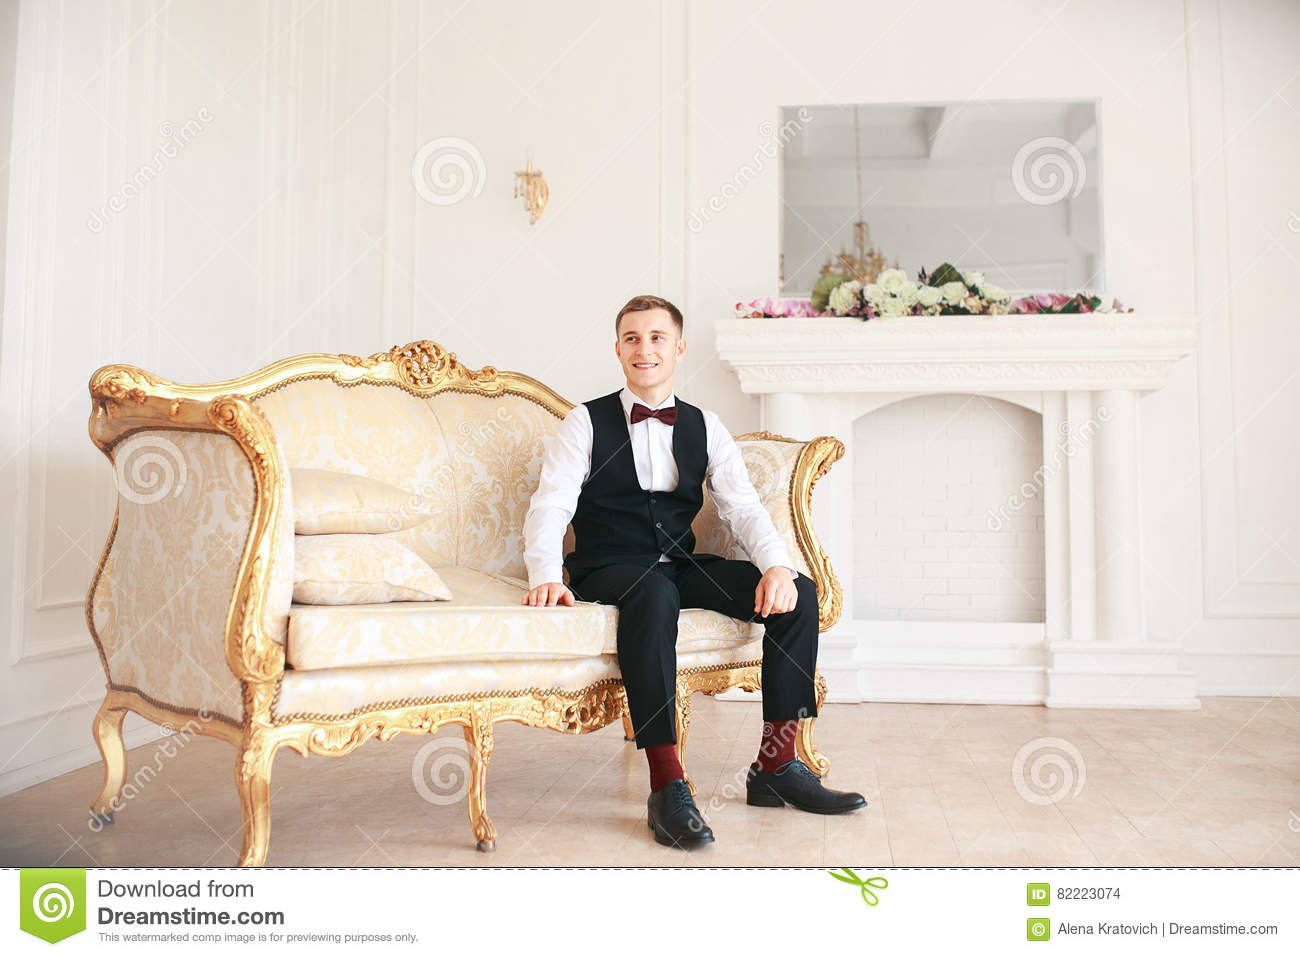 Groom sitting on the sofa waiting for the bride on his wedding day. at wedding tuxedo smiling and waiting for bride.Elegant man